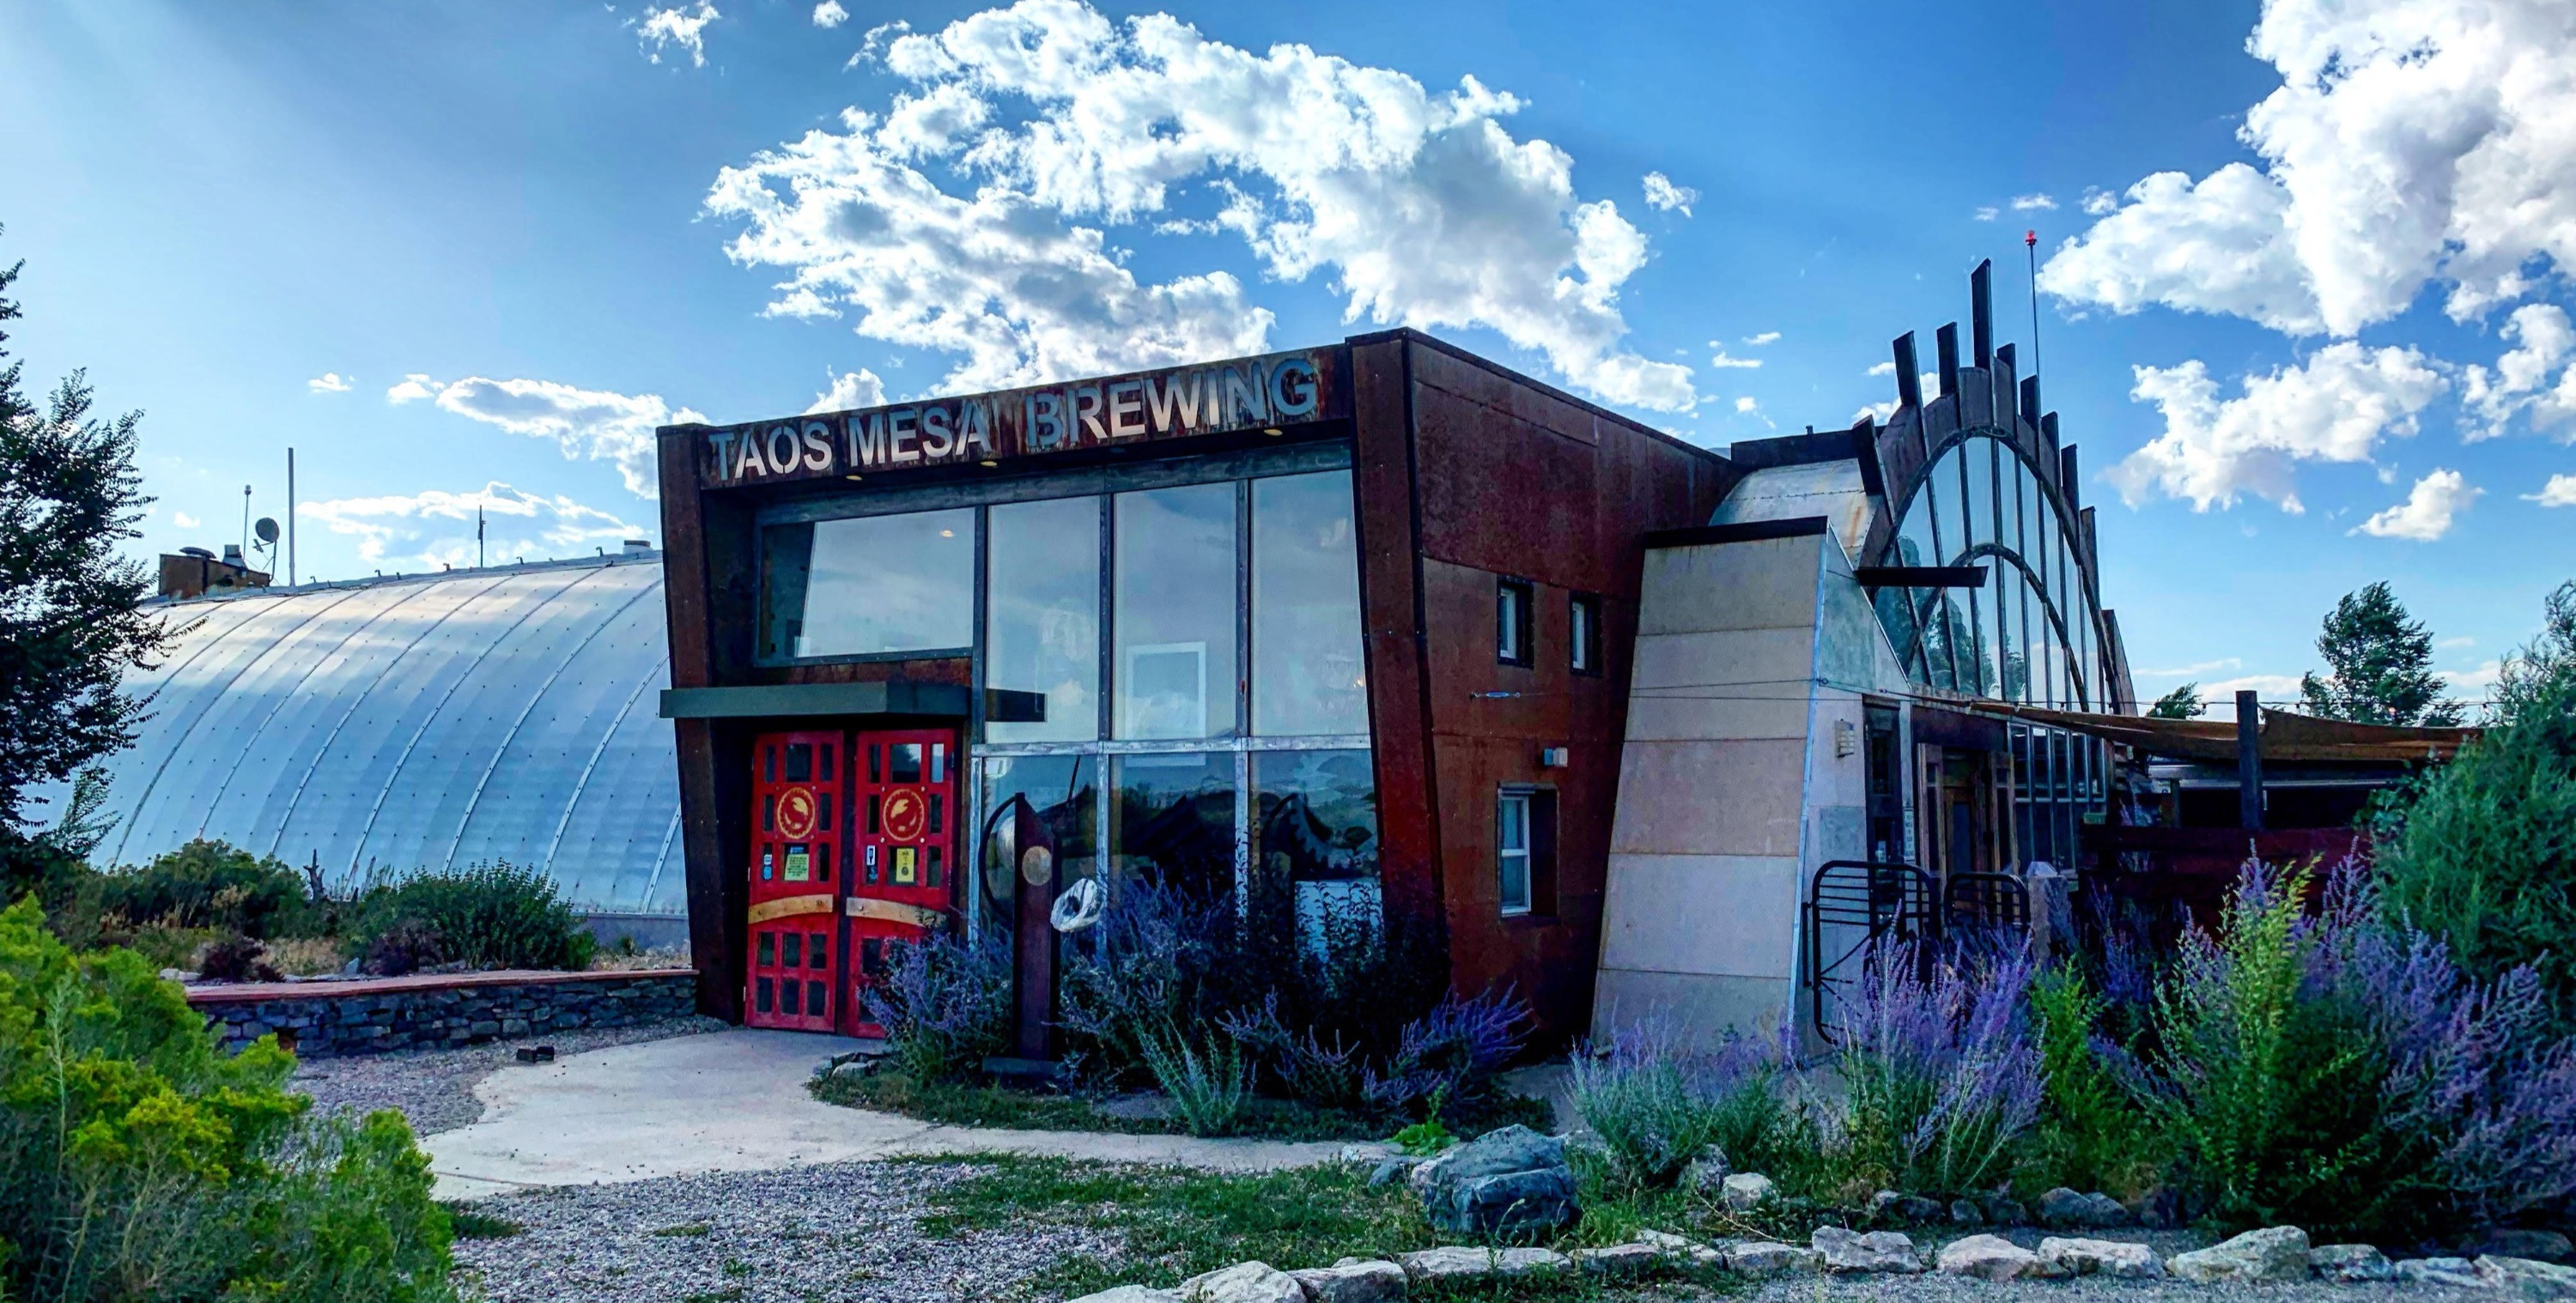 Taos Mesa Brewing Mothership.